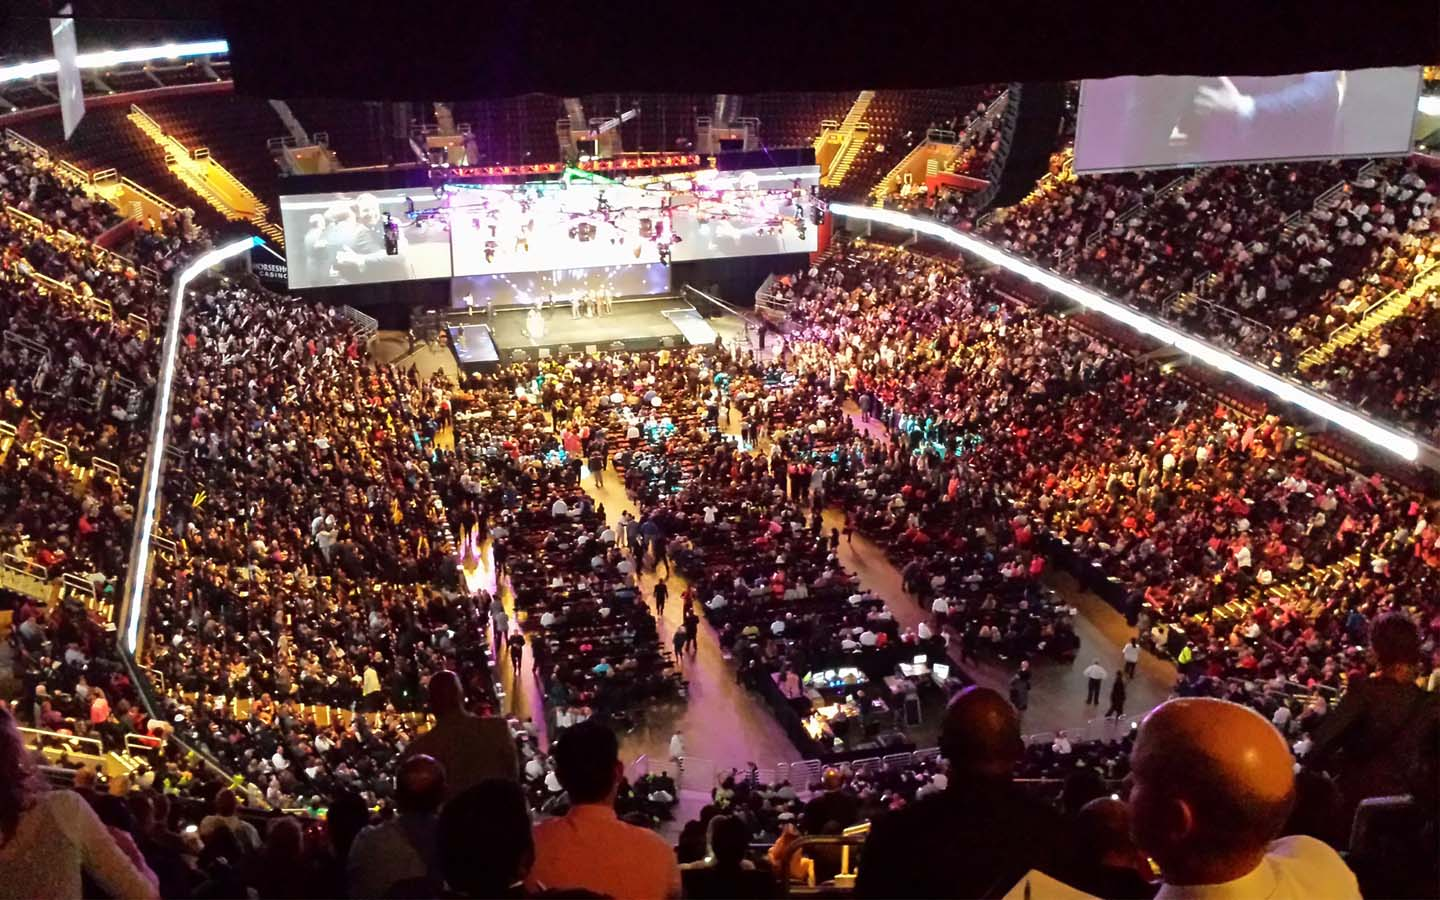 Stadium full with audience similar to stand up comedy in Dubai shows